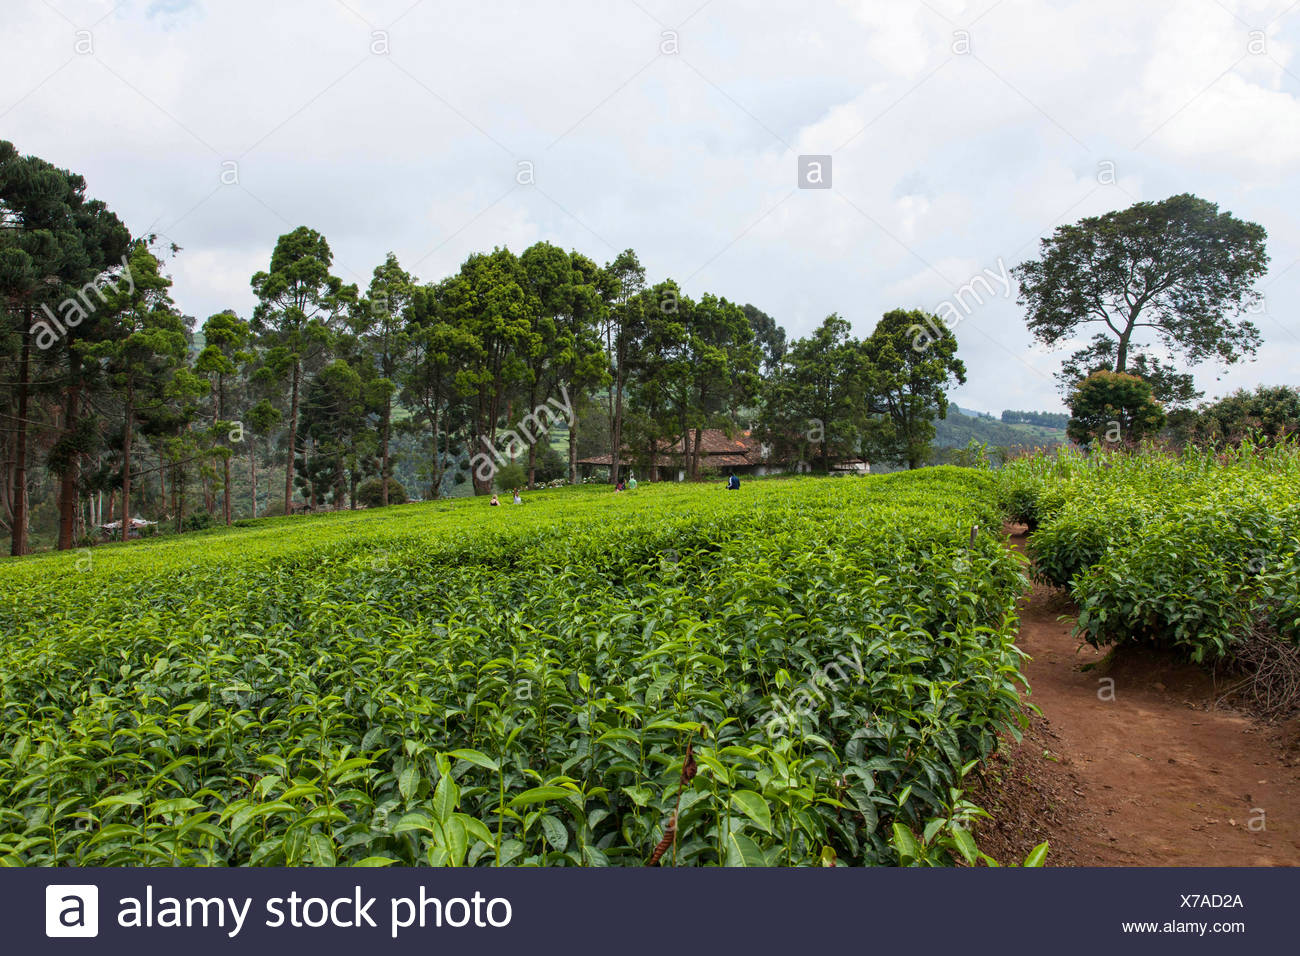 path in tea plantation in rainy season, Burundi, Gitega Stock Photo